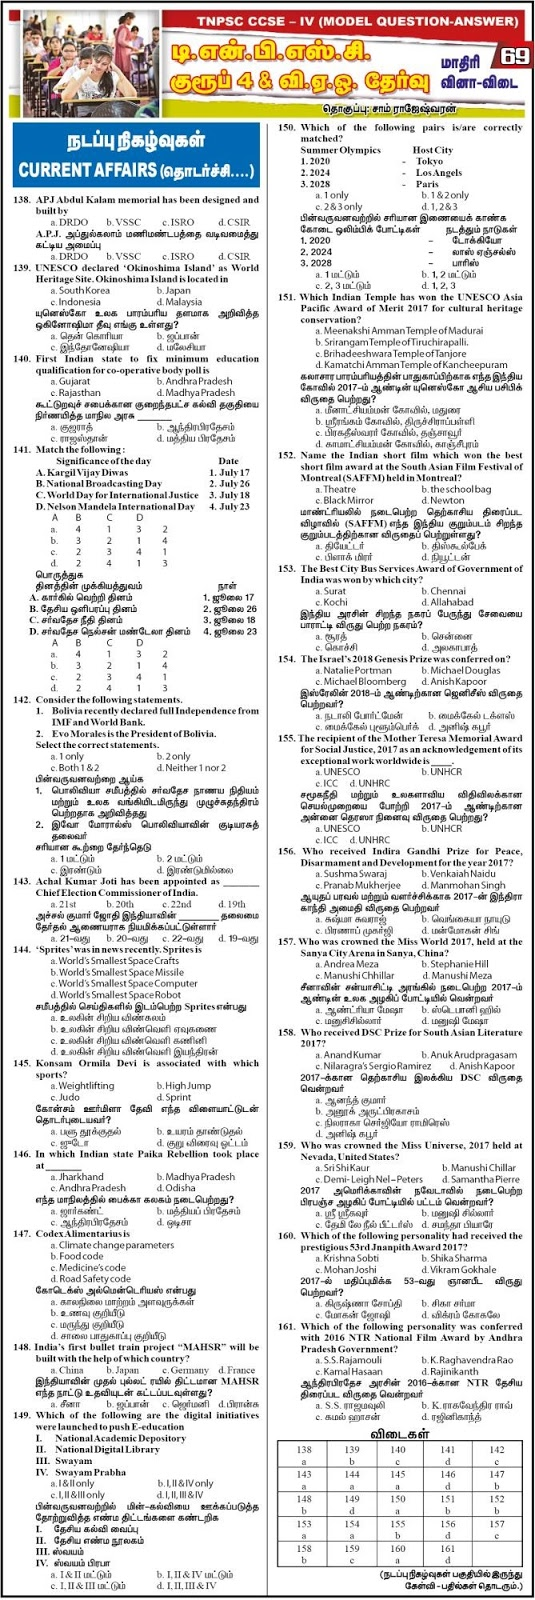 TNPSC Group 4 Current Affairs Model Papers - Dinathanthi Feb 5, 2018, Download as PDF